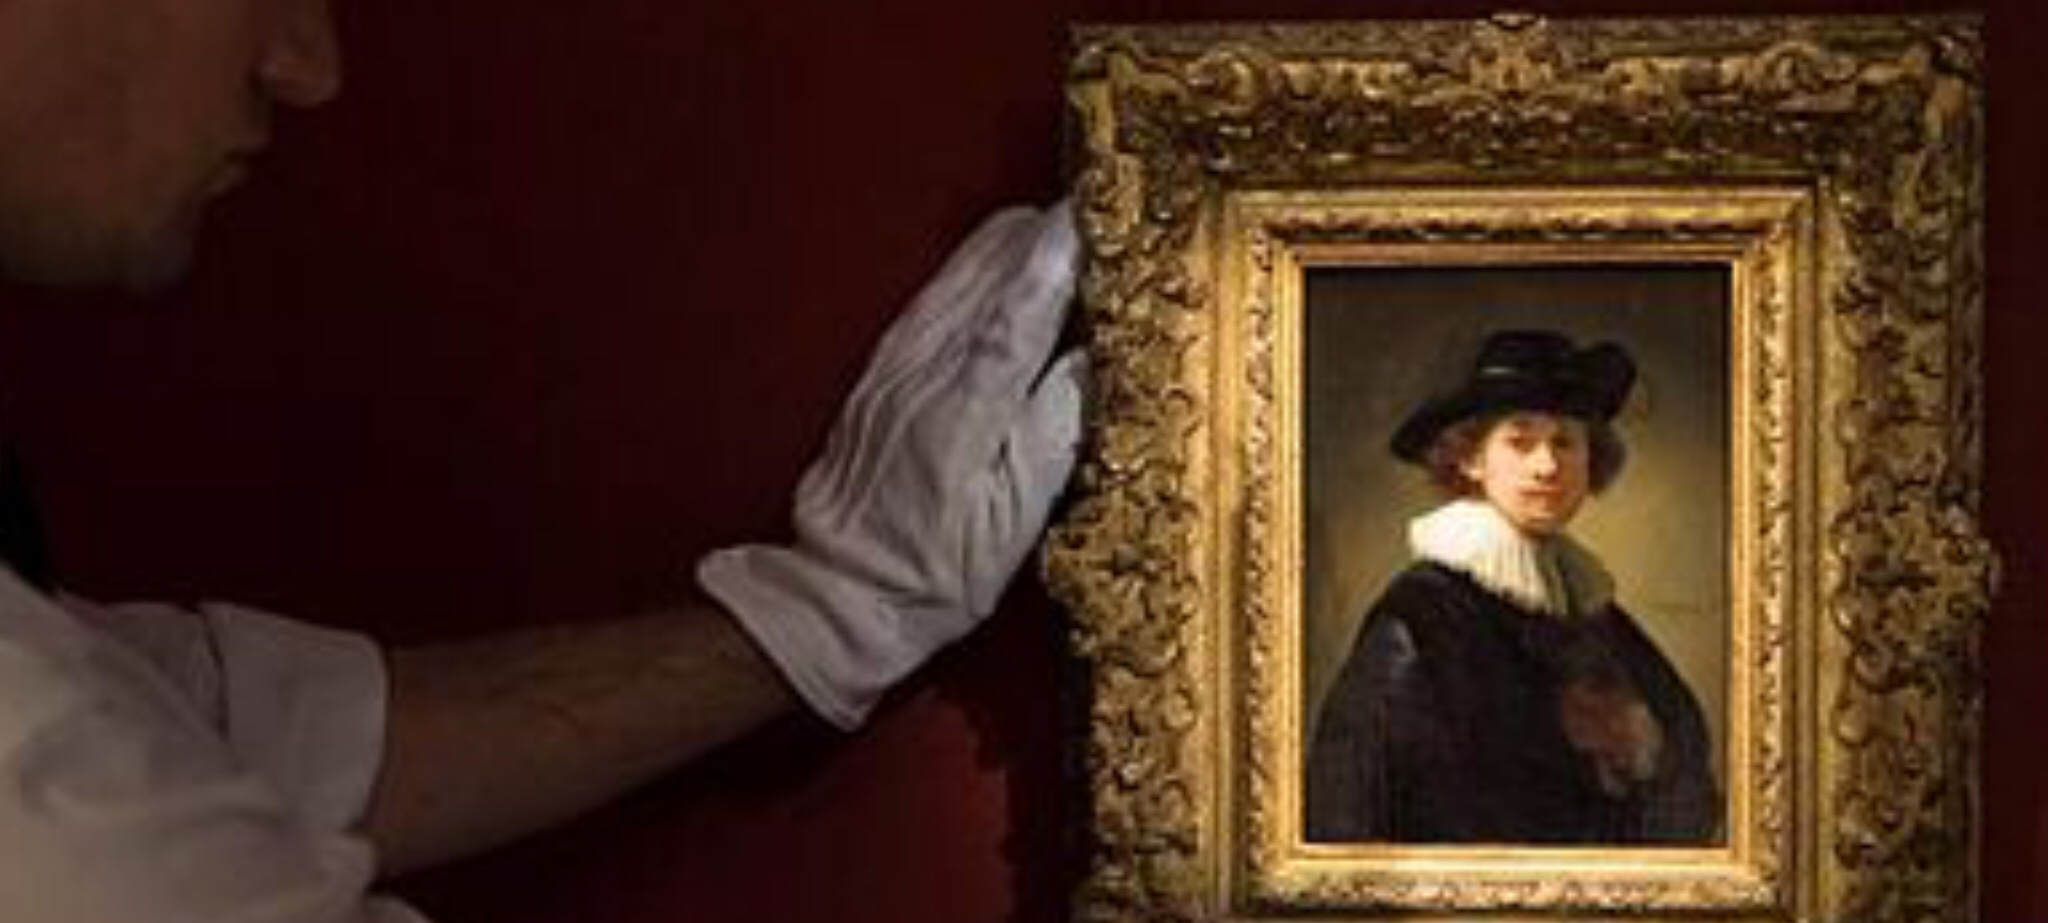 Rembrandt self-portrait sold $18.7М at Sotheby's